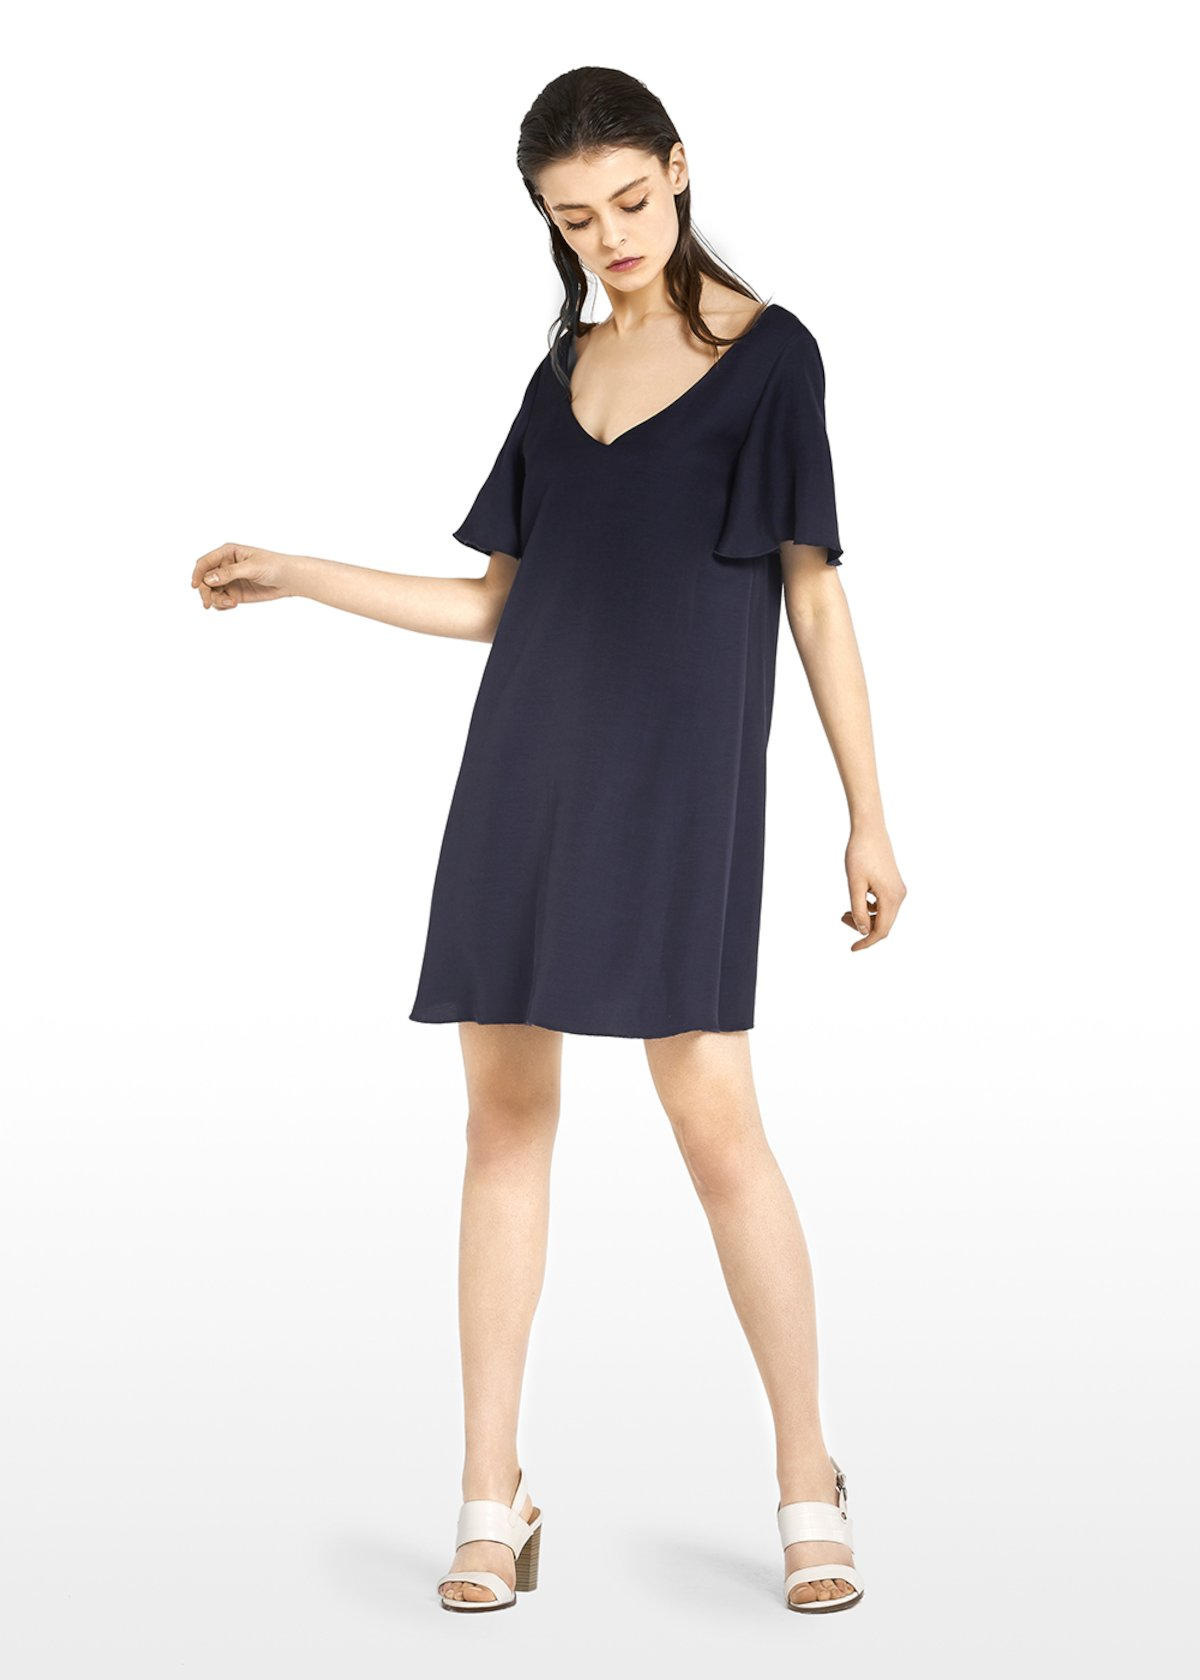 Agadir dress in linen blend with ruffles at the cuffs - Medium Blue - Woman